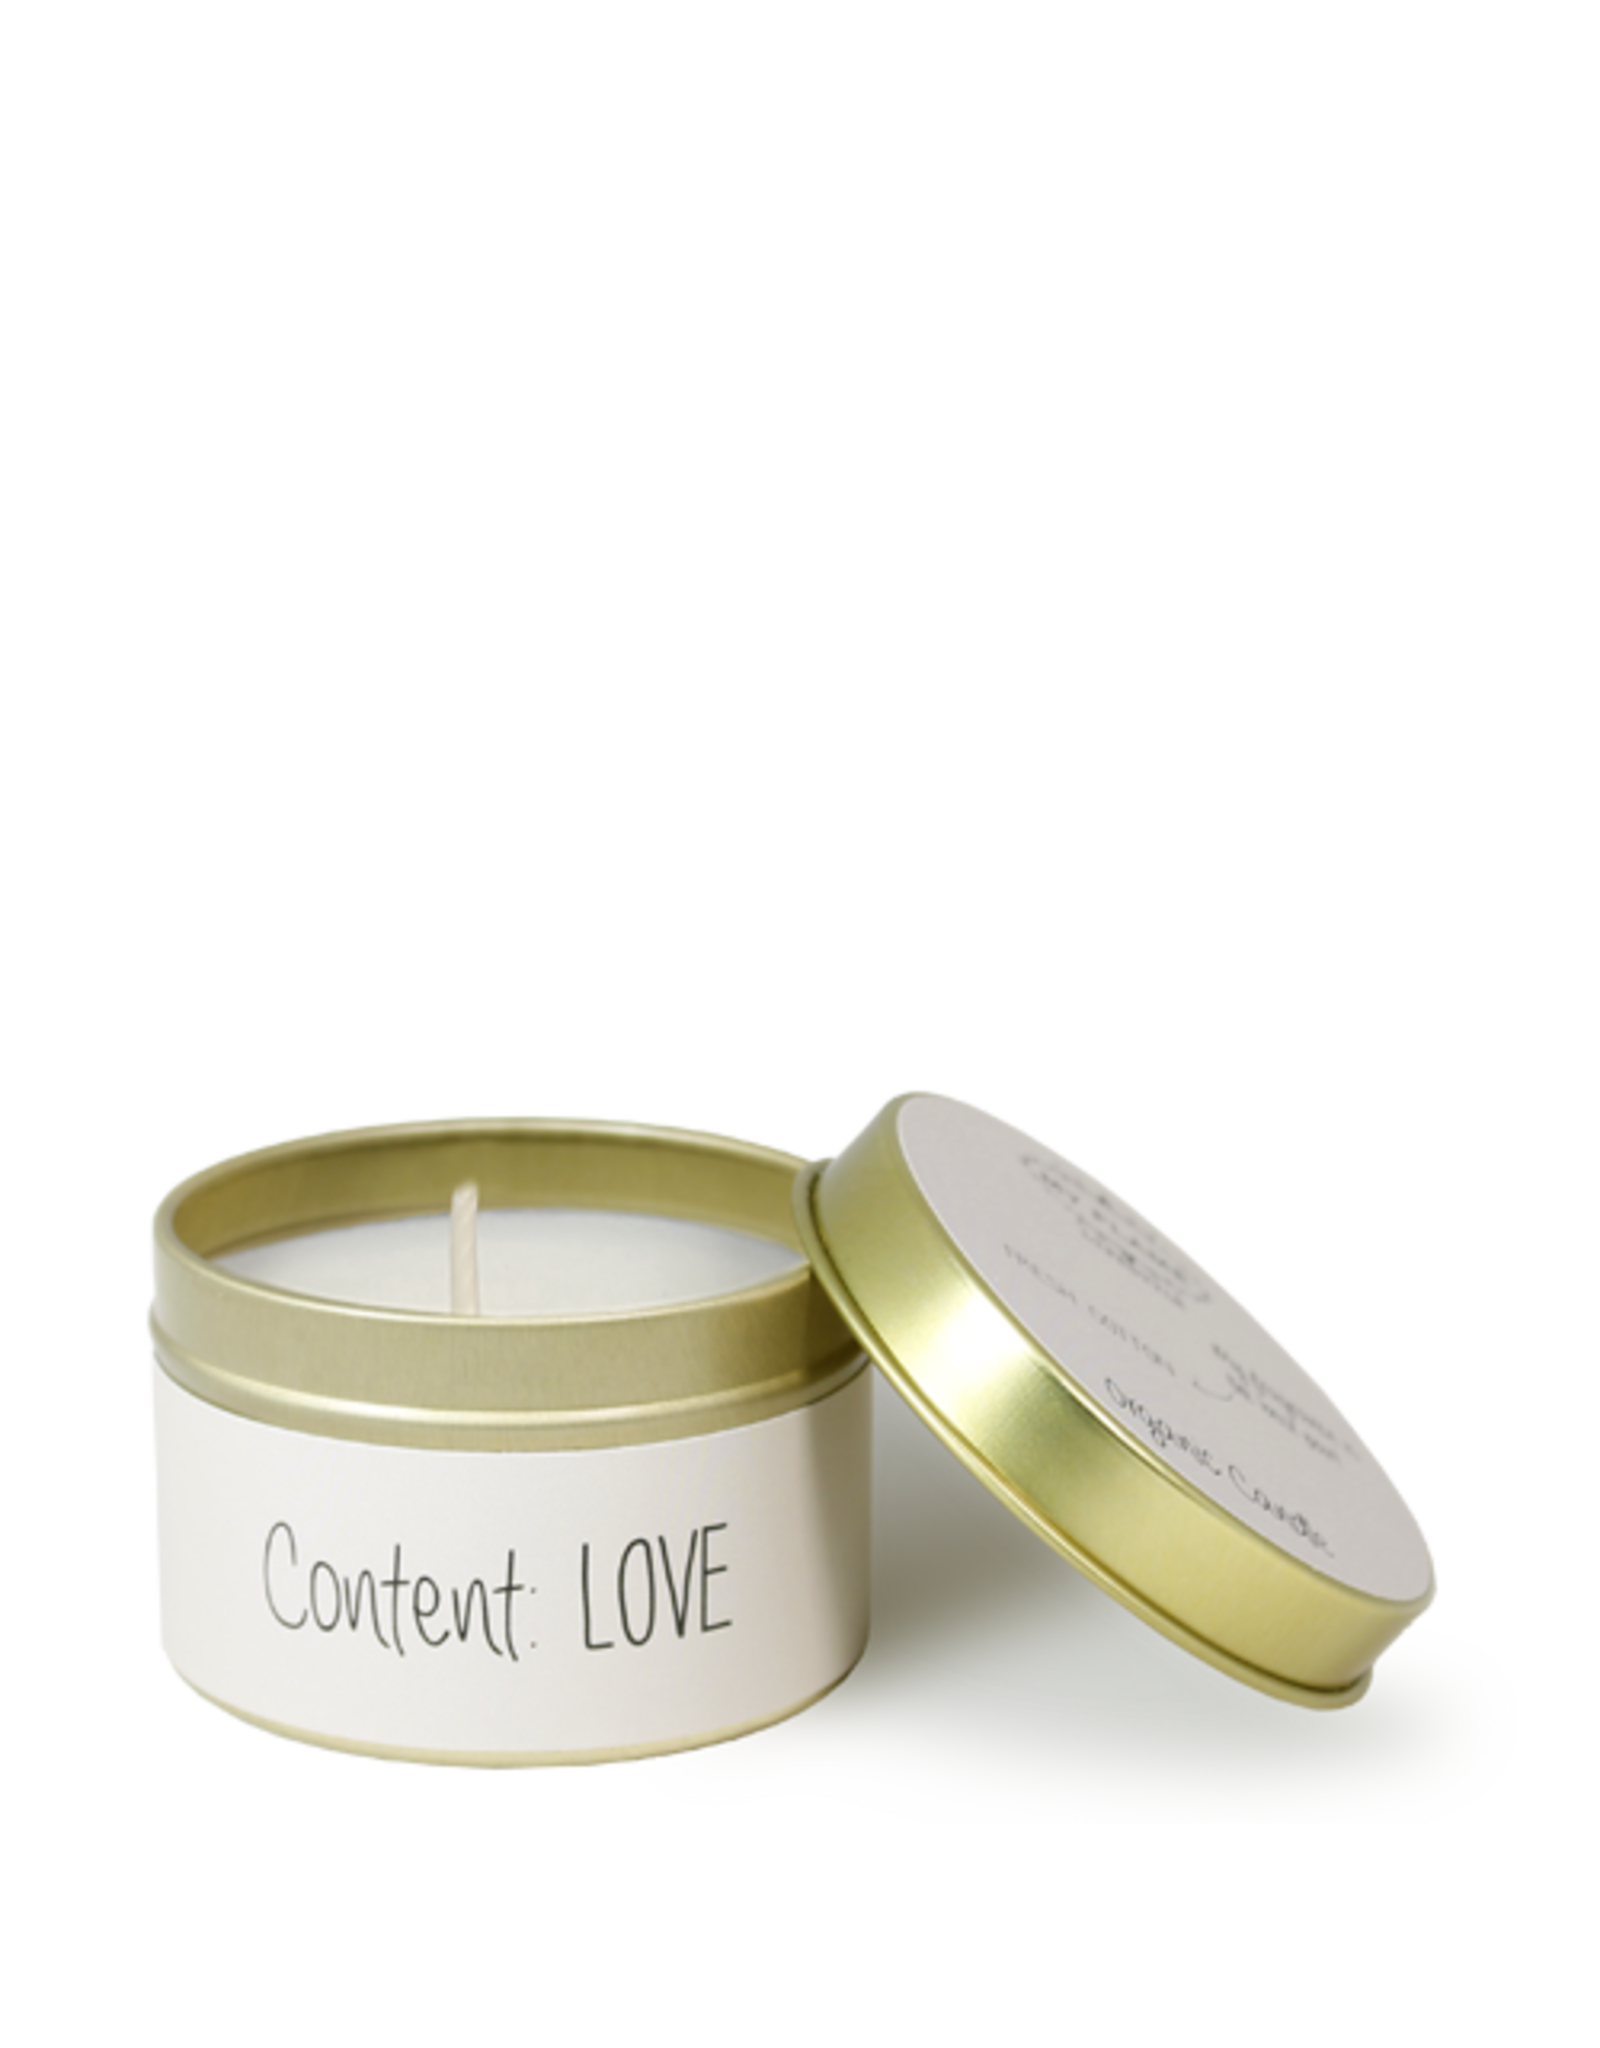 My flame Lifestyle Sojakaars   Content : Love   Geur: Fresh Cotton